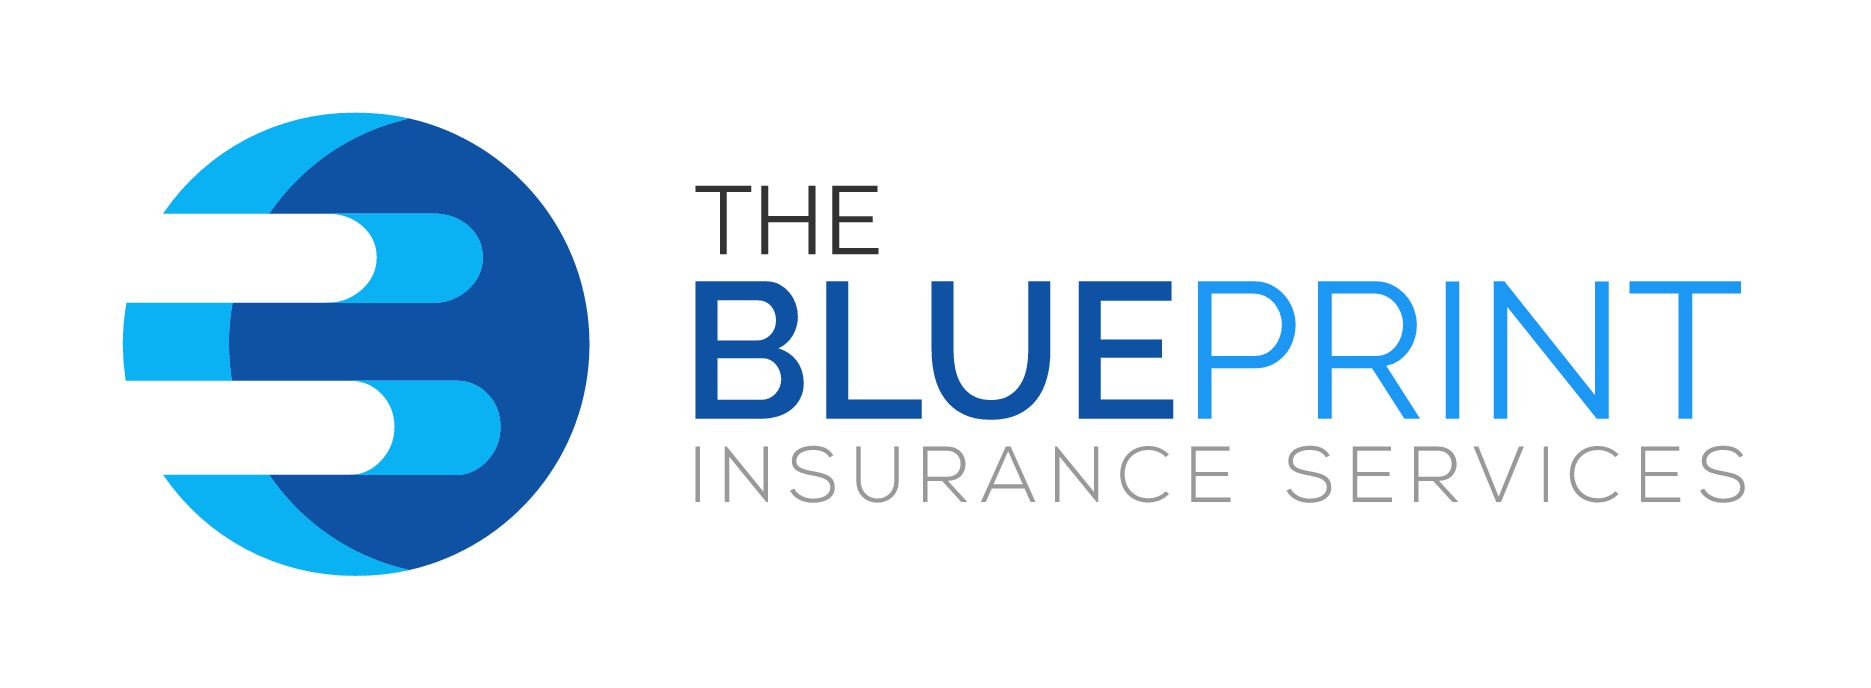 make financial and professional services cool - the BluePrint LOGO